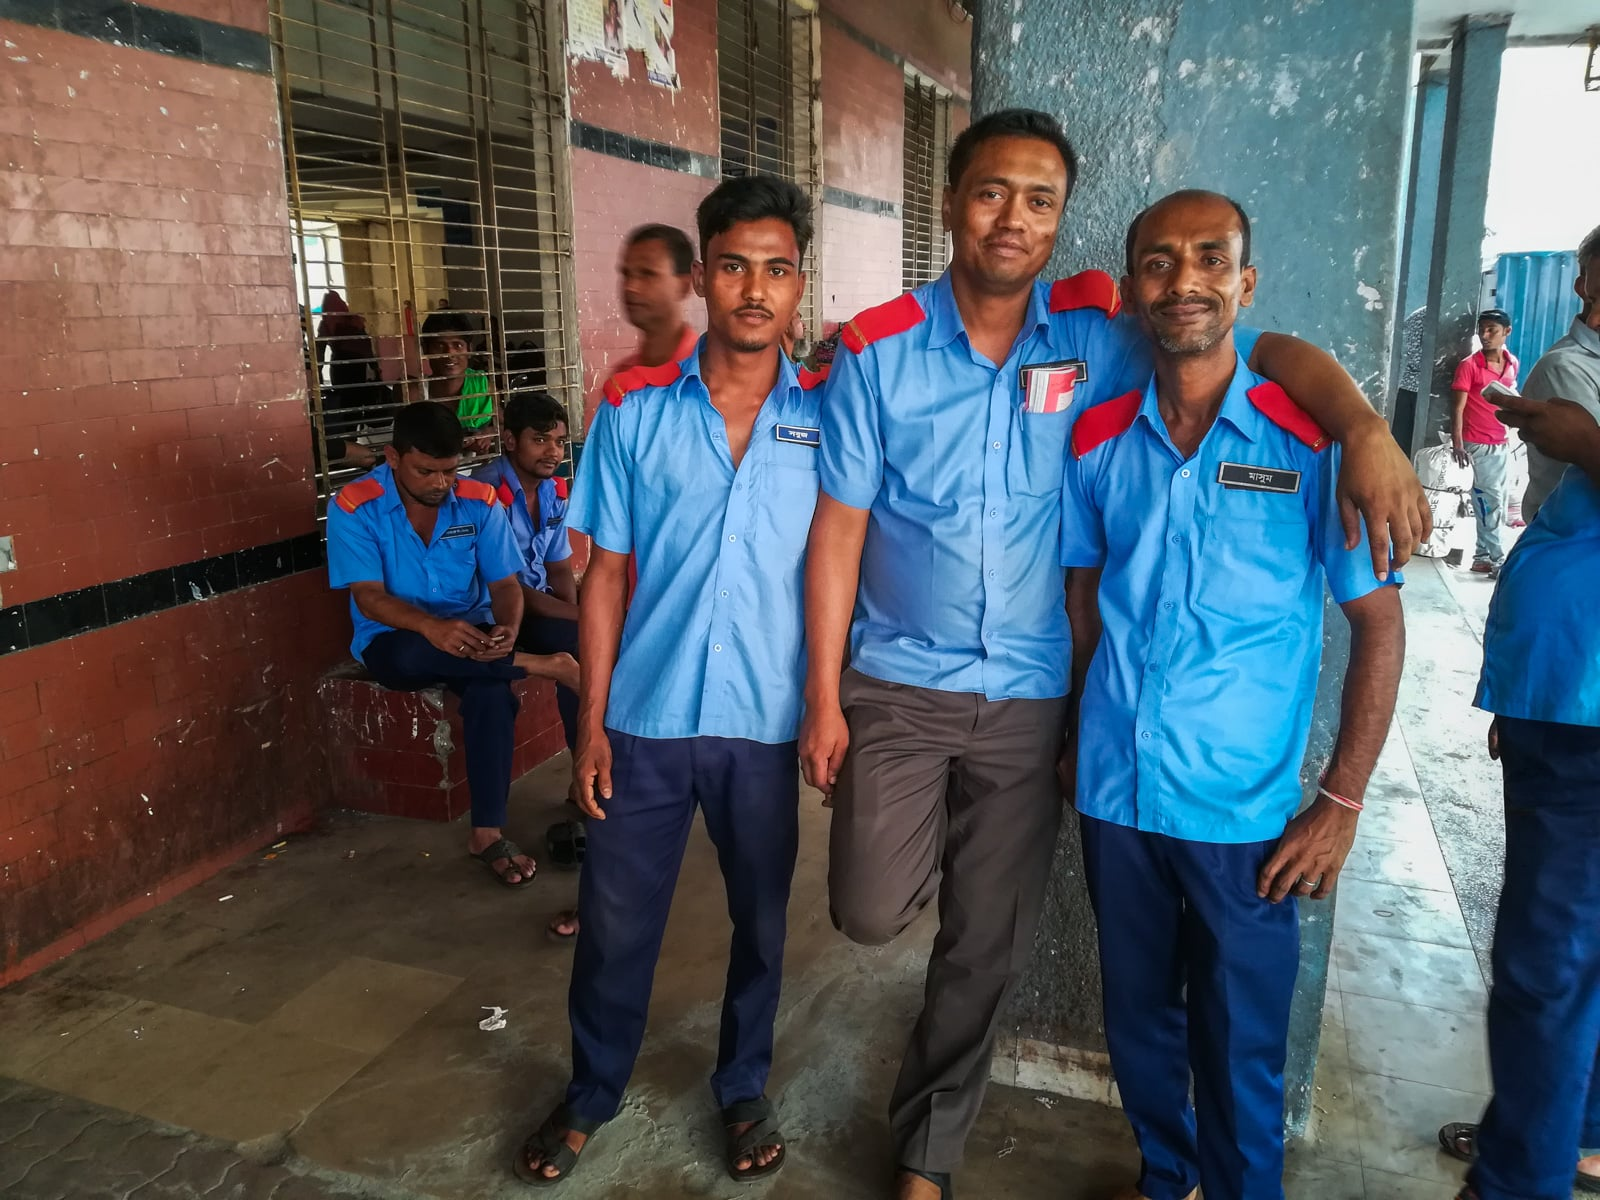 How to buy launch tickets in Dhaka, Bangladesh - Friendly porters at Sadarghat launch terminal - Lost With Purpose travel blog